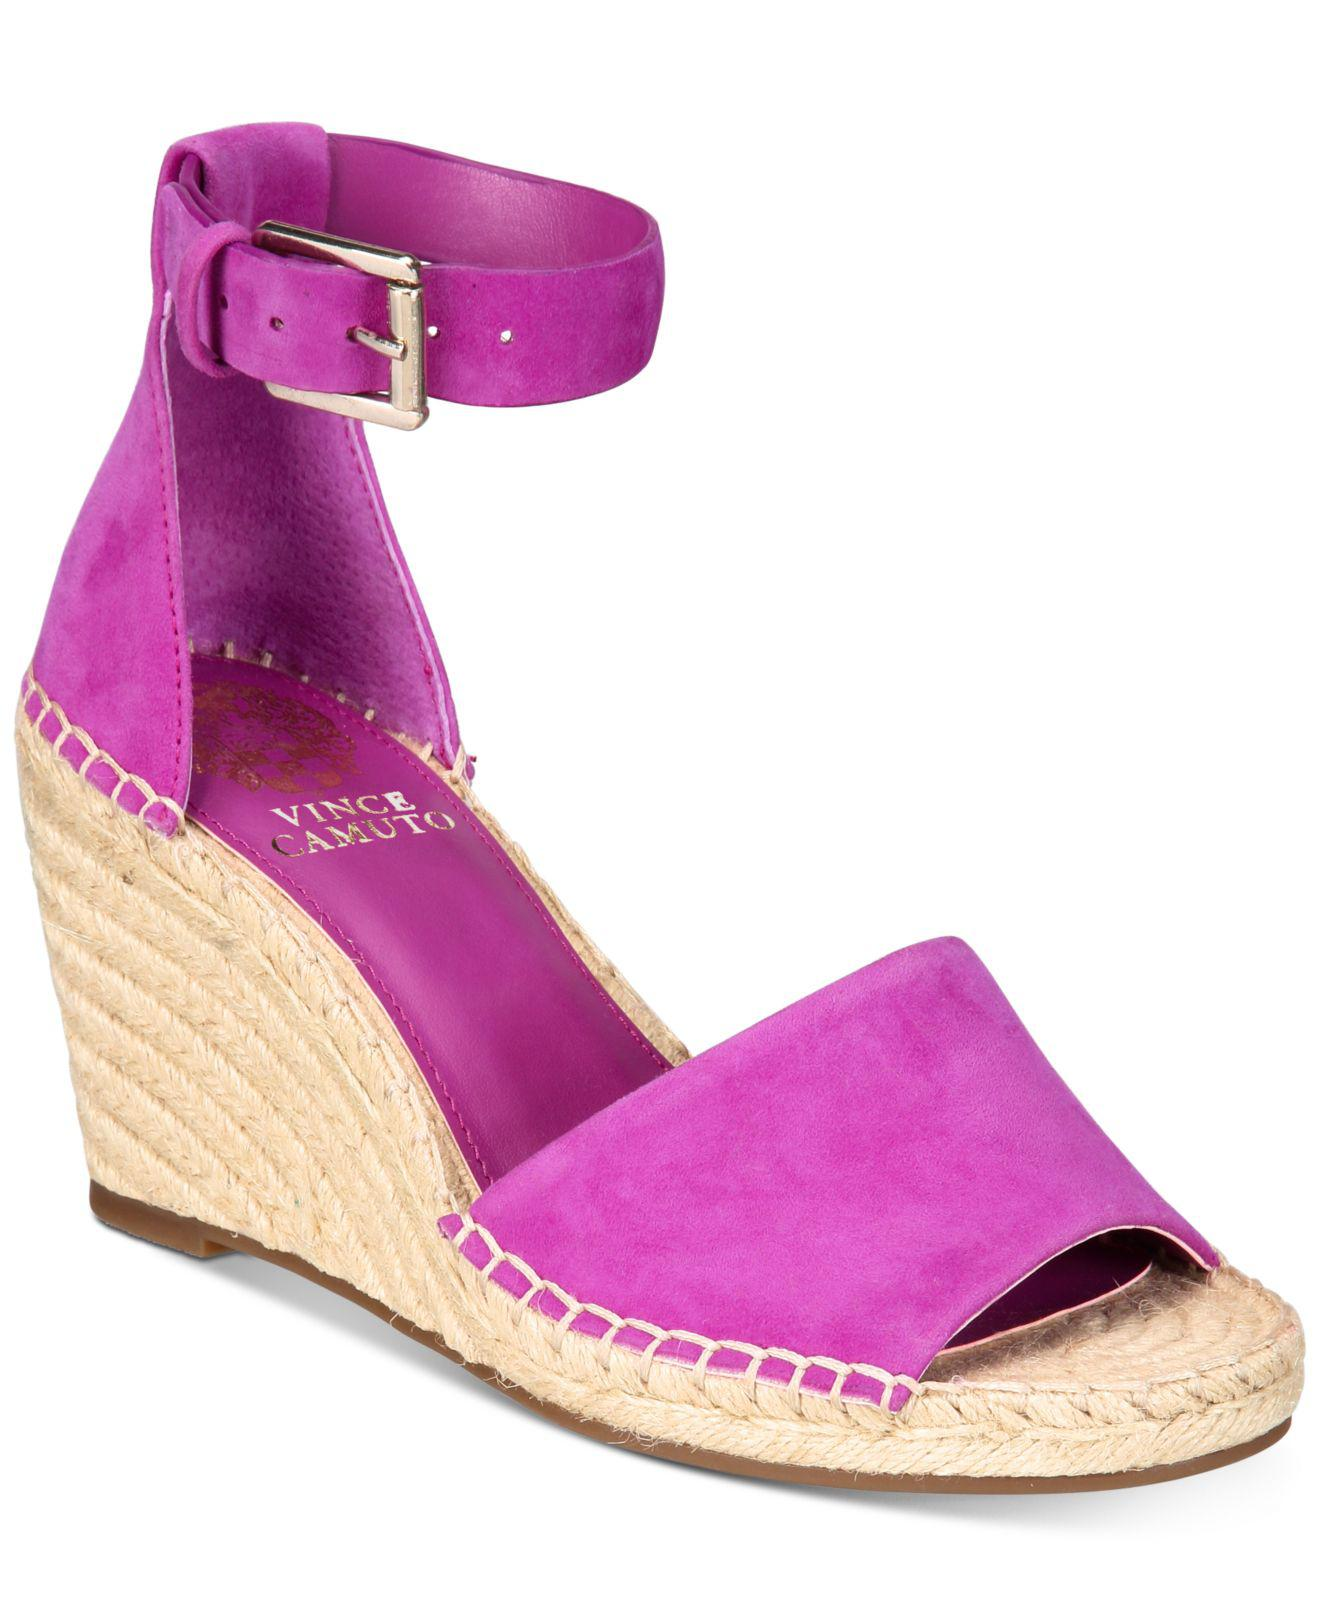 fc4babe981d4 Lyst - Vince Camuto Leera Espadrille Wedge Sandals in Pink